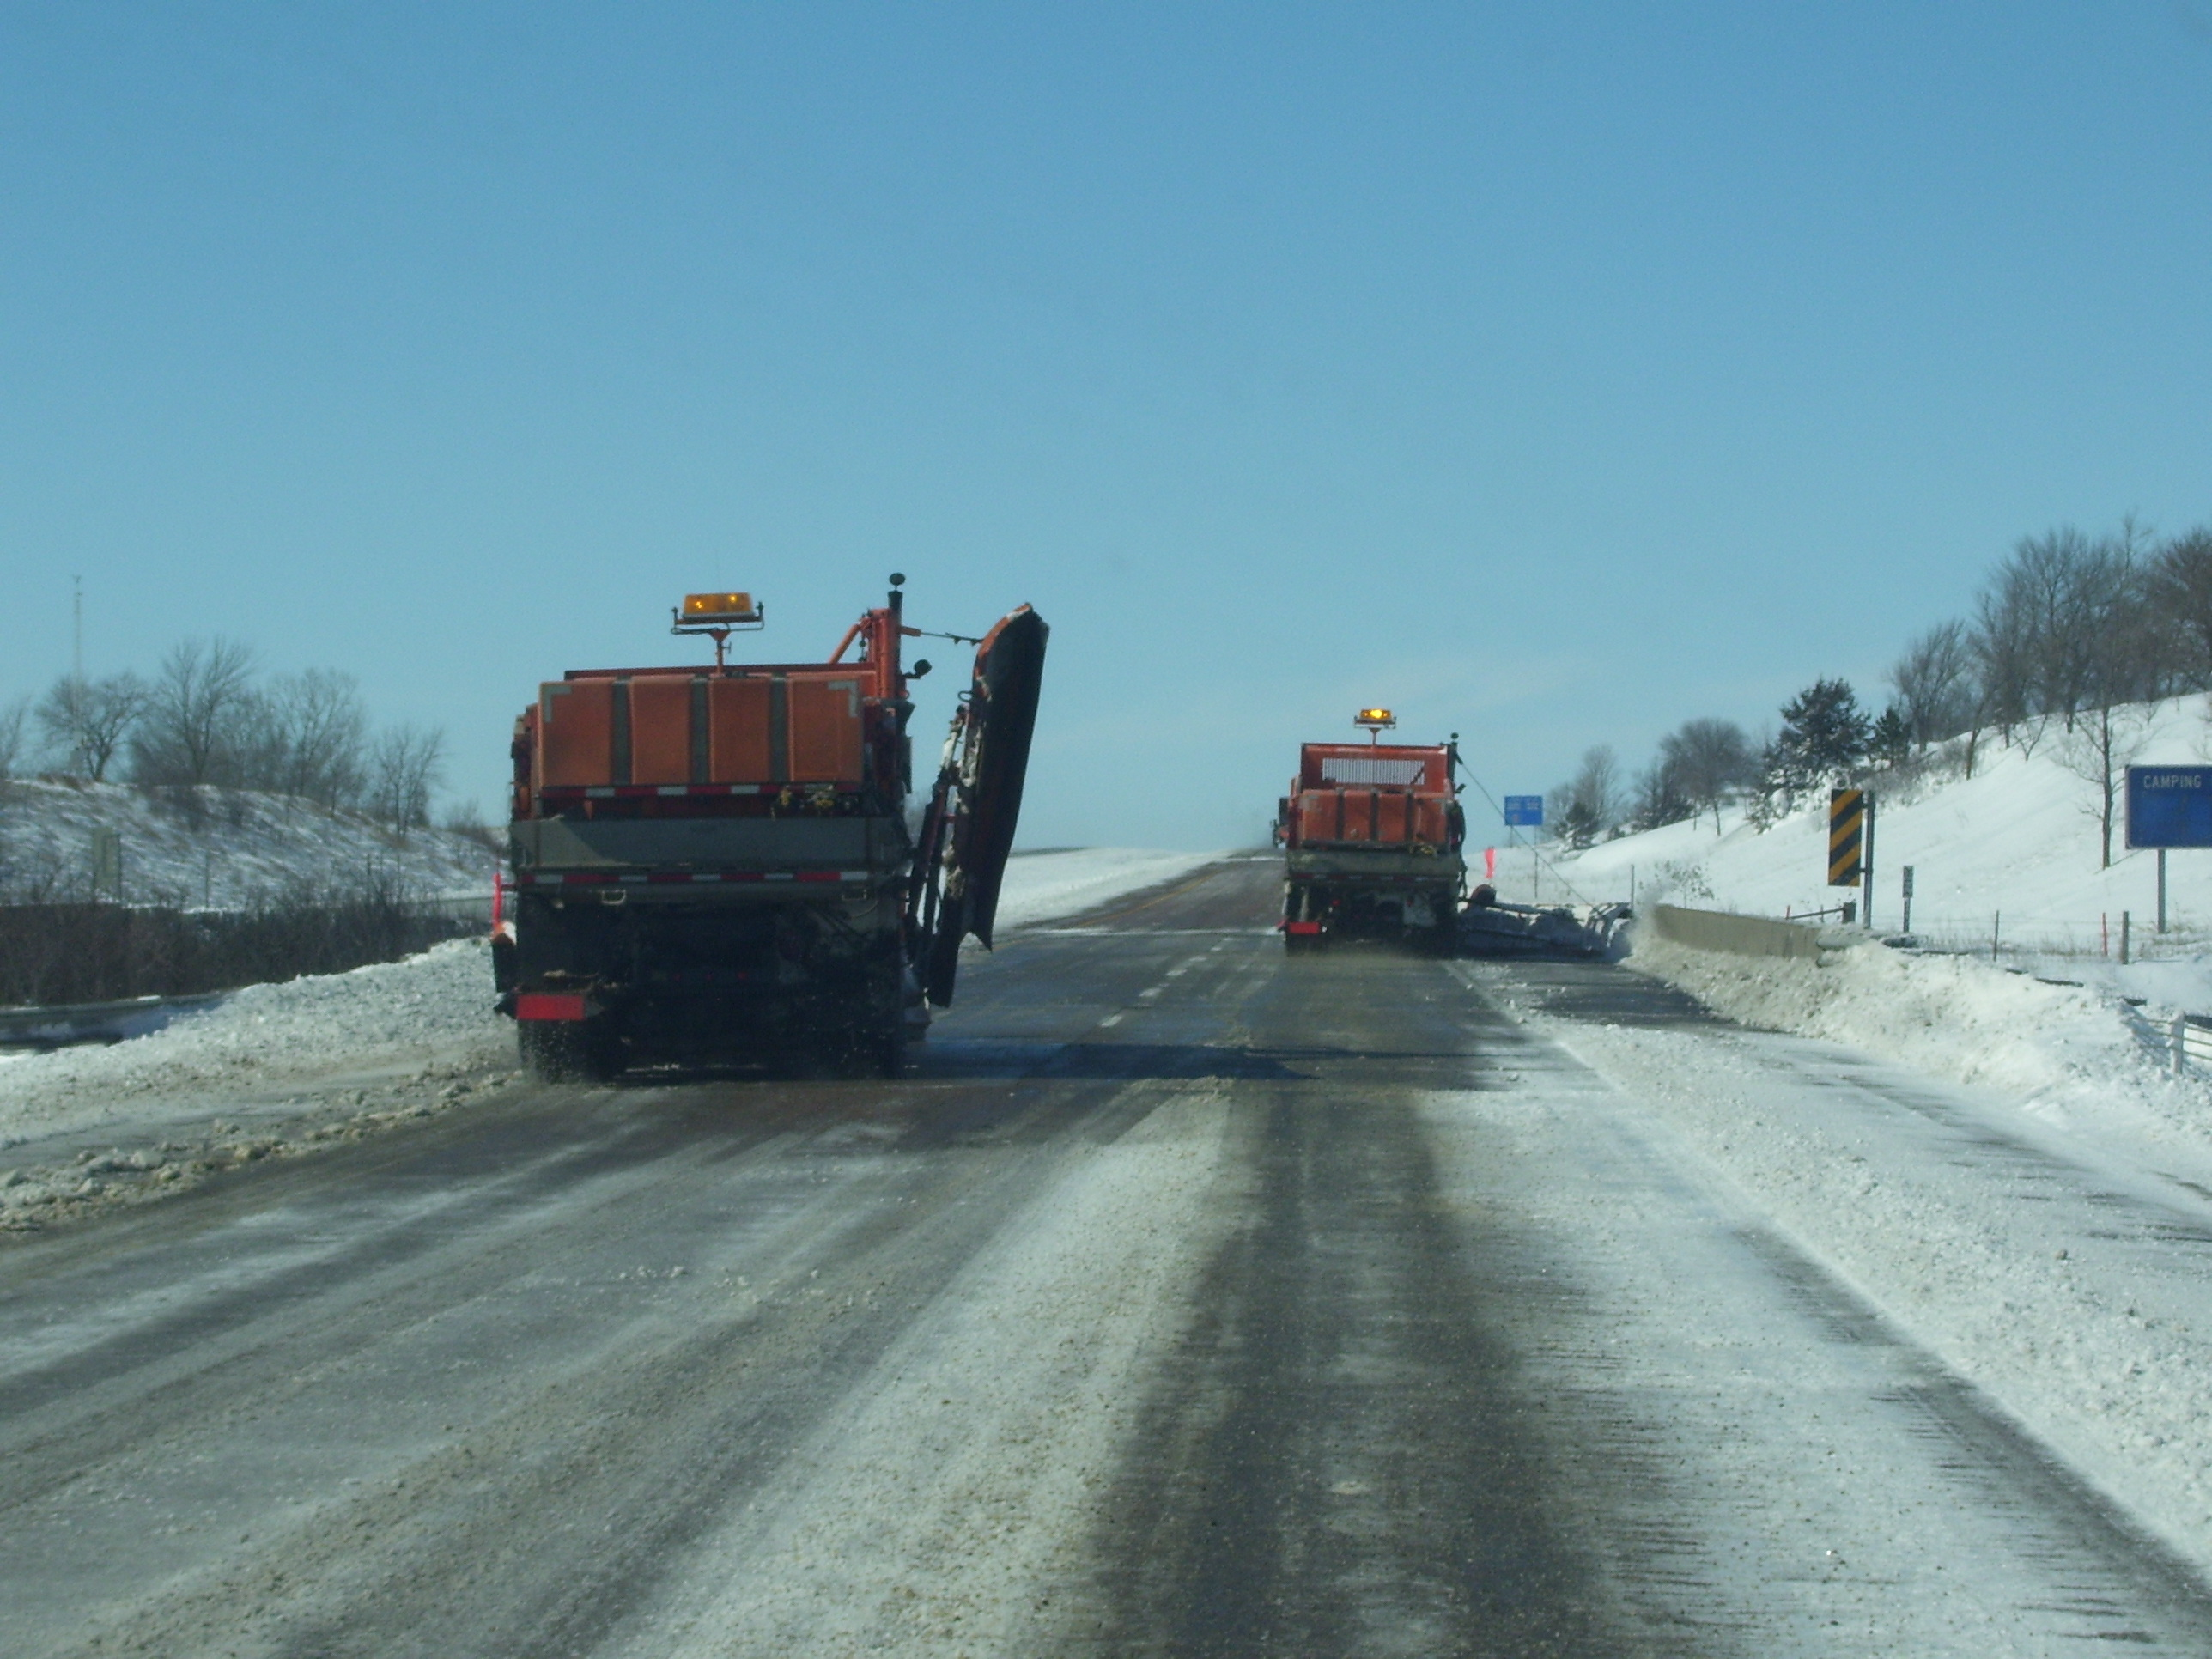 Snowplows clearing a street after a storm